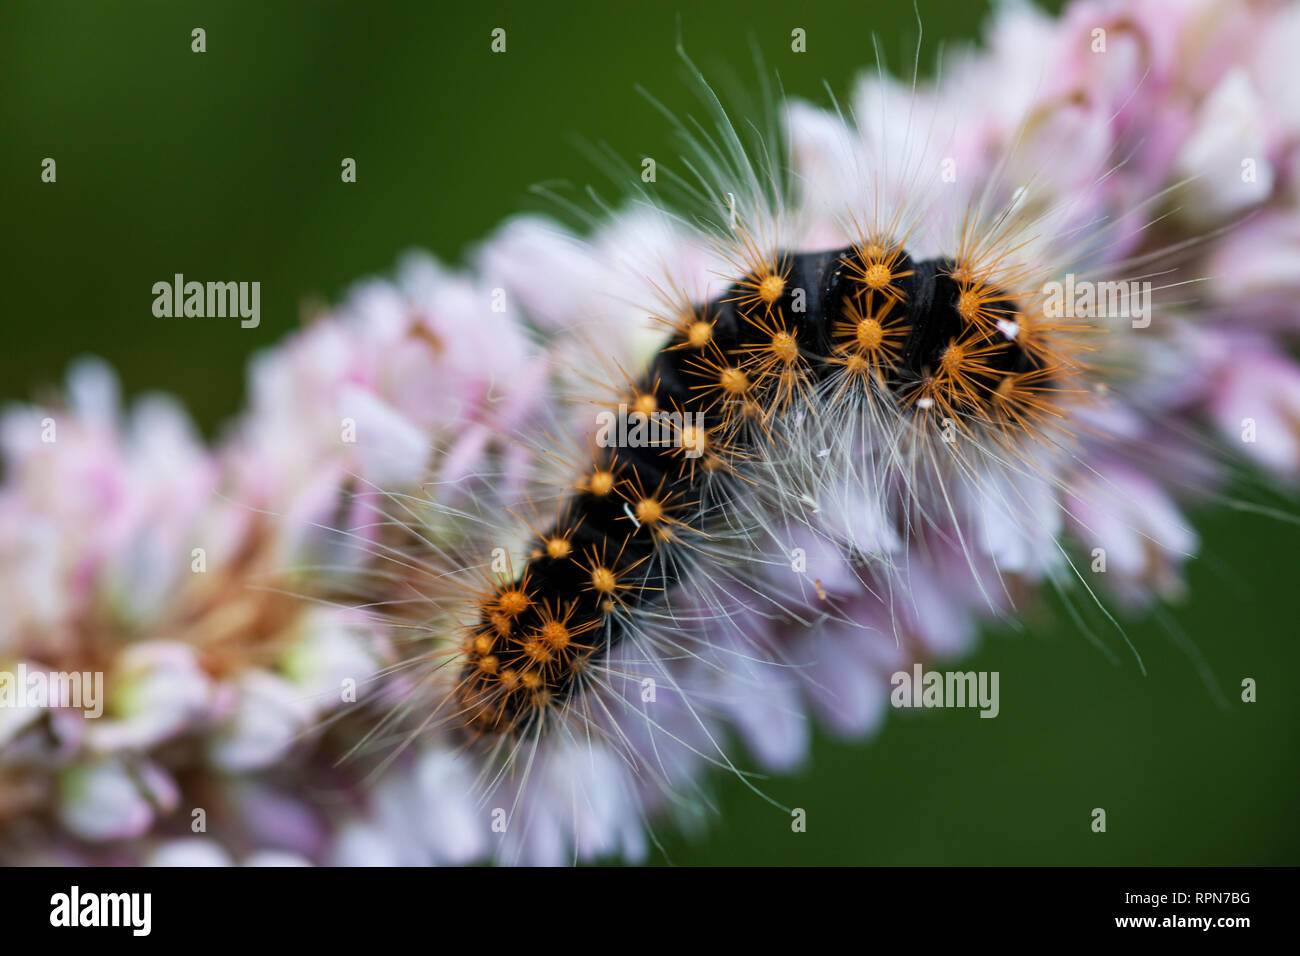 zoology / animals, insects, Scarce Dagger (Acronicta Auricoma), caterpillar on European bistort, Upper, Additional-Rights-Clearance-Info-Not-Available - Stock Image